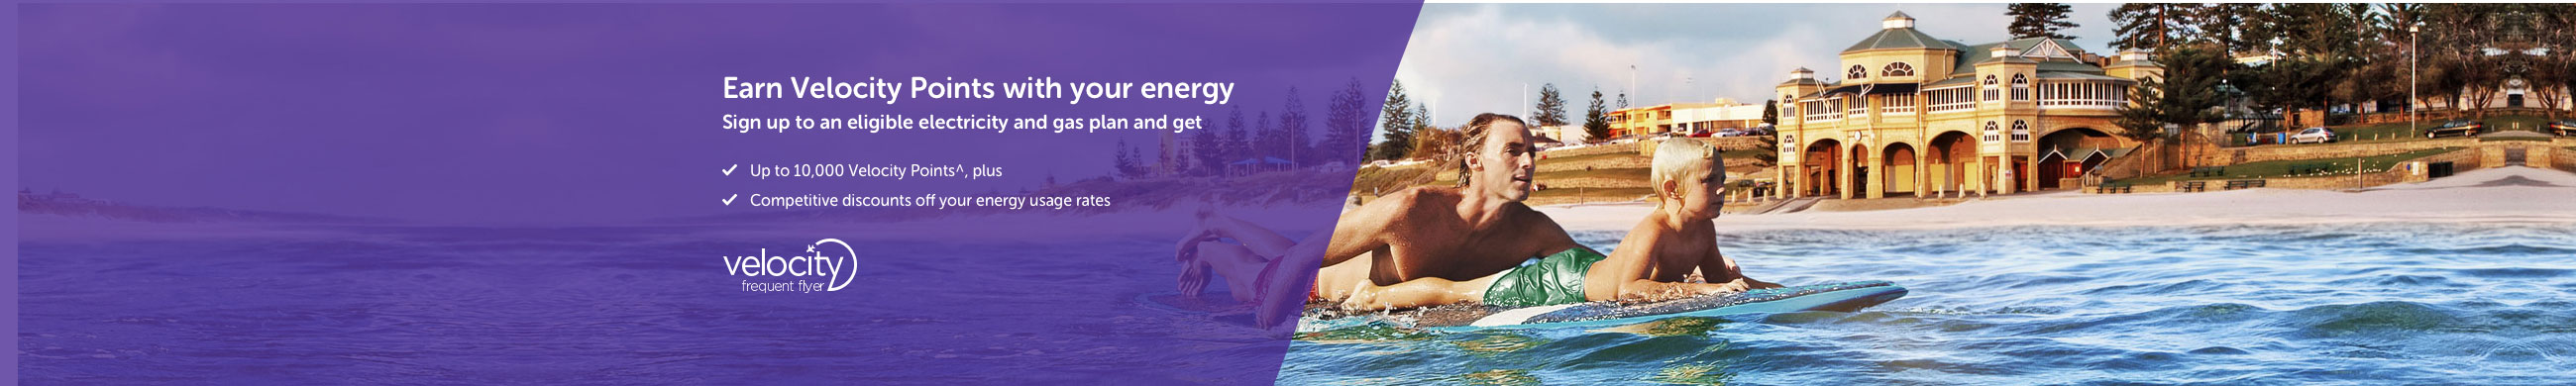 Earn Velocity Points with your home energy